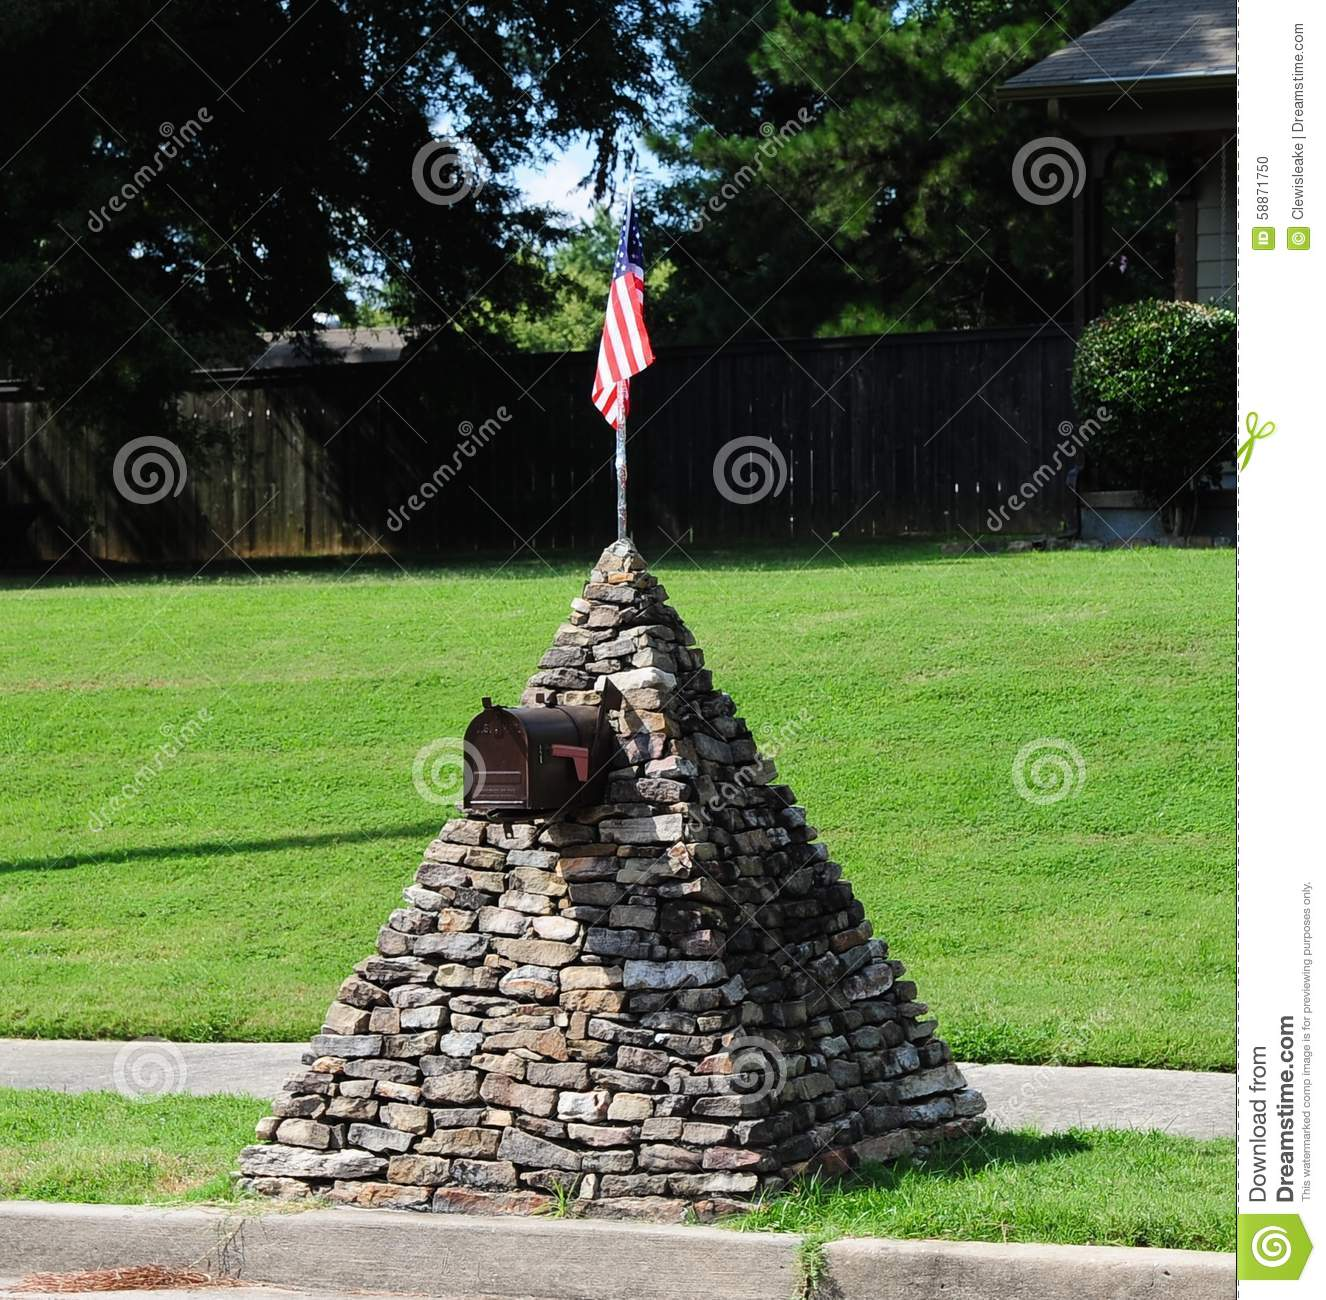 stone mailbox designs. Mailbox Topped With U.S Flag Stone Designs